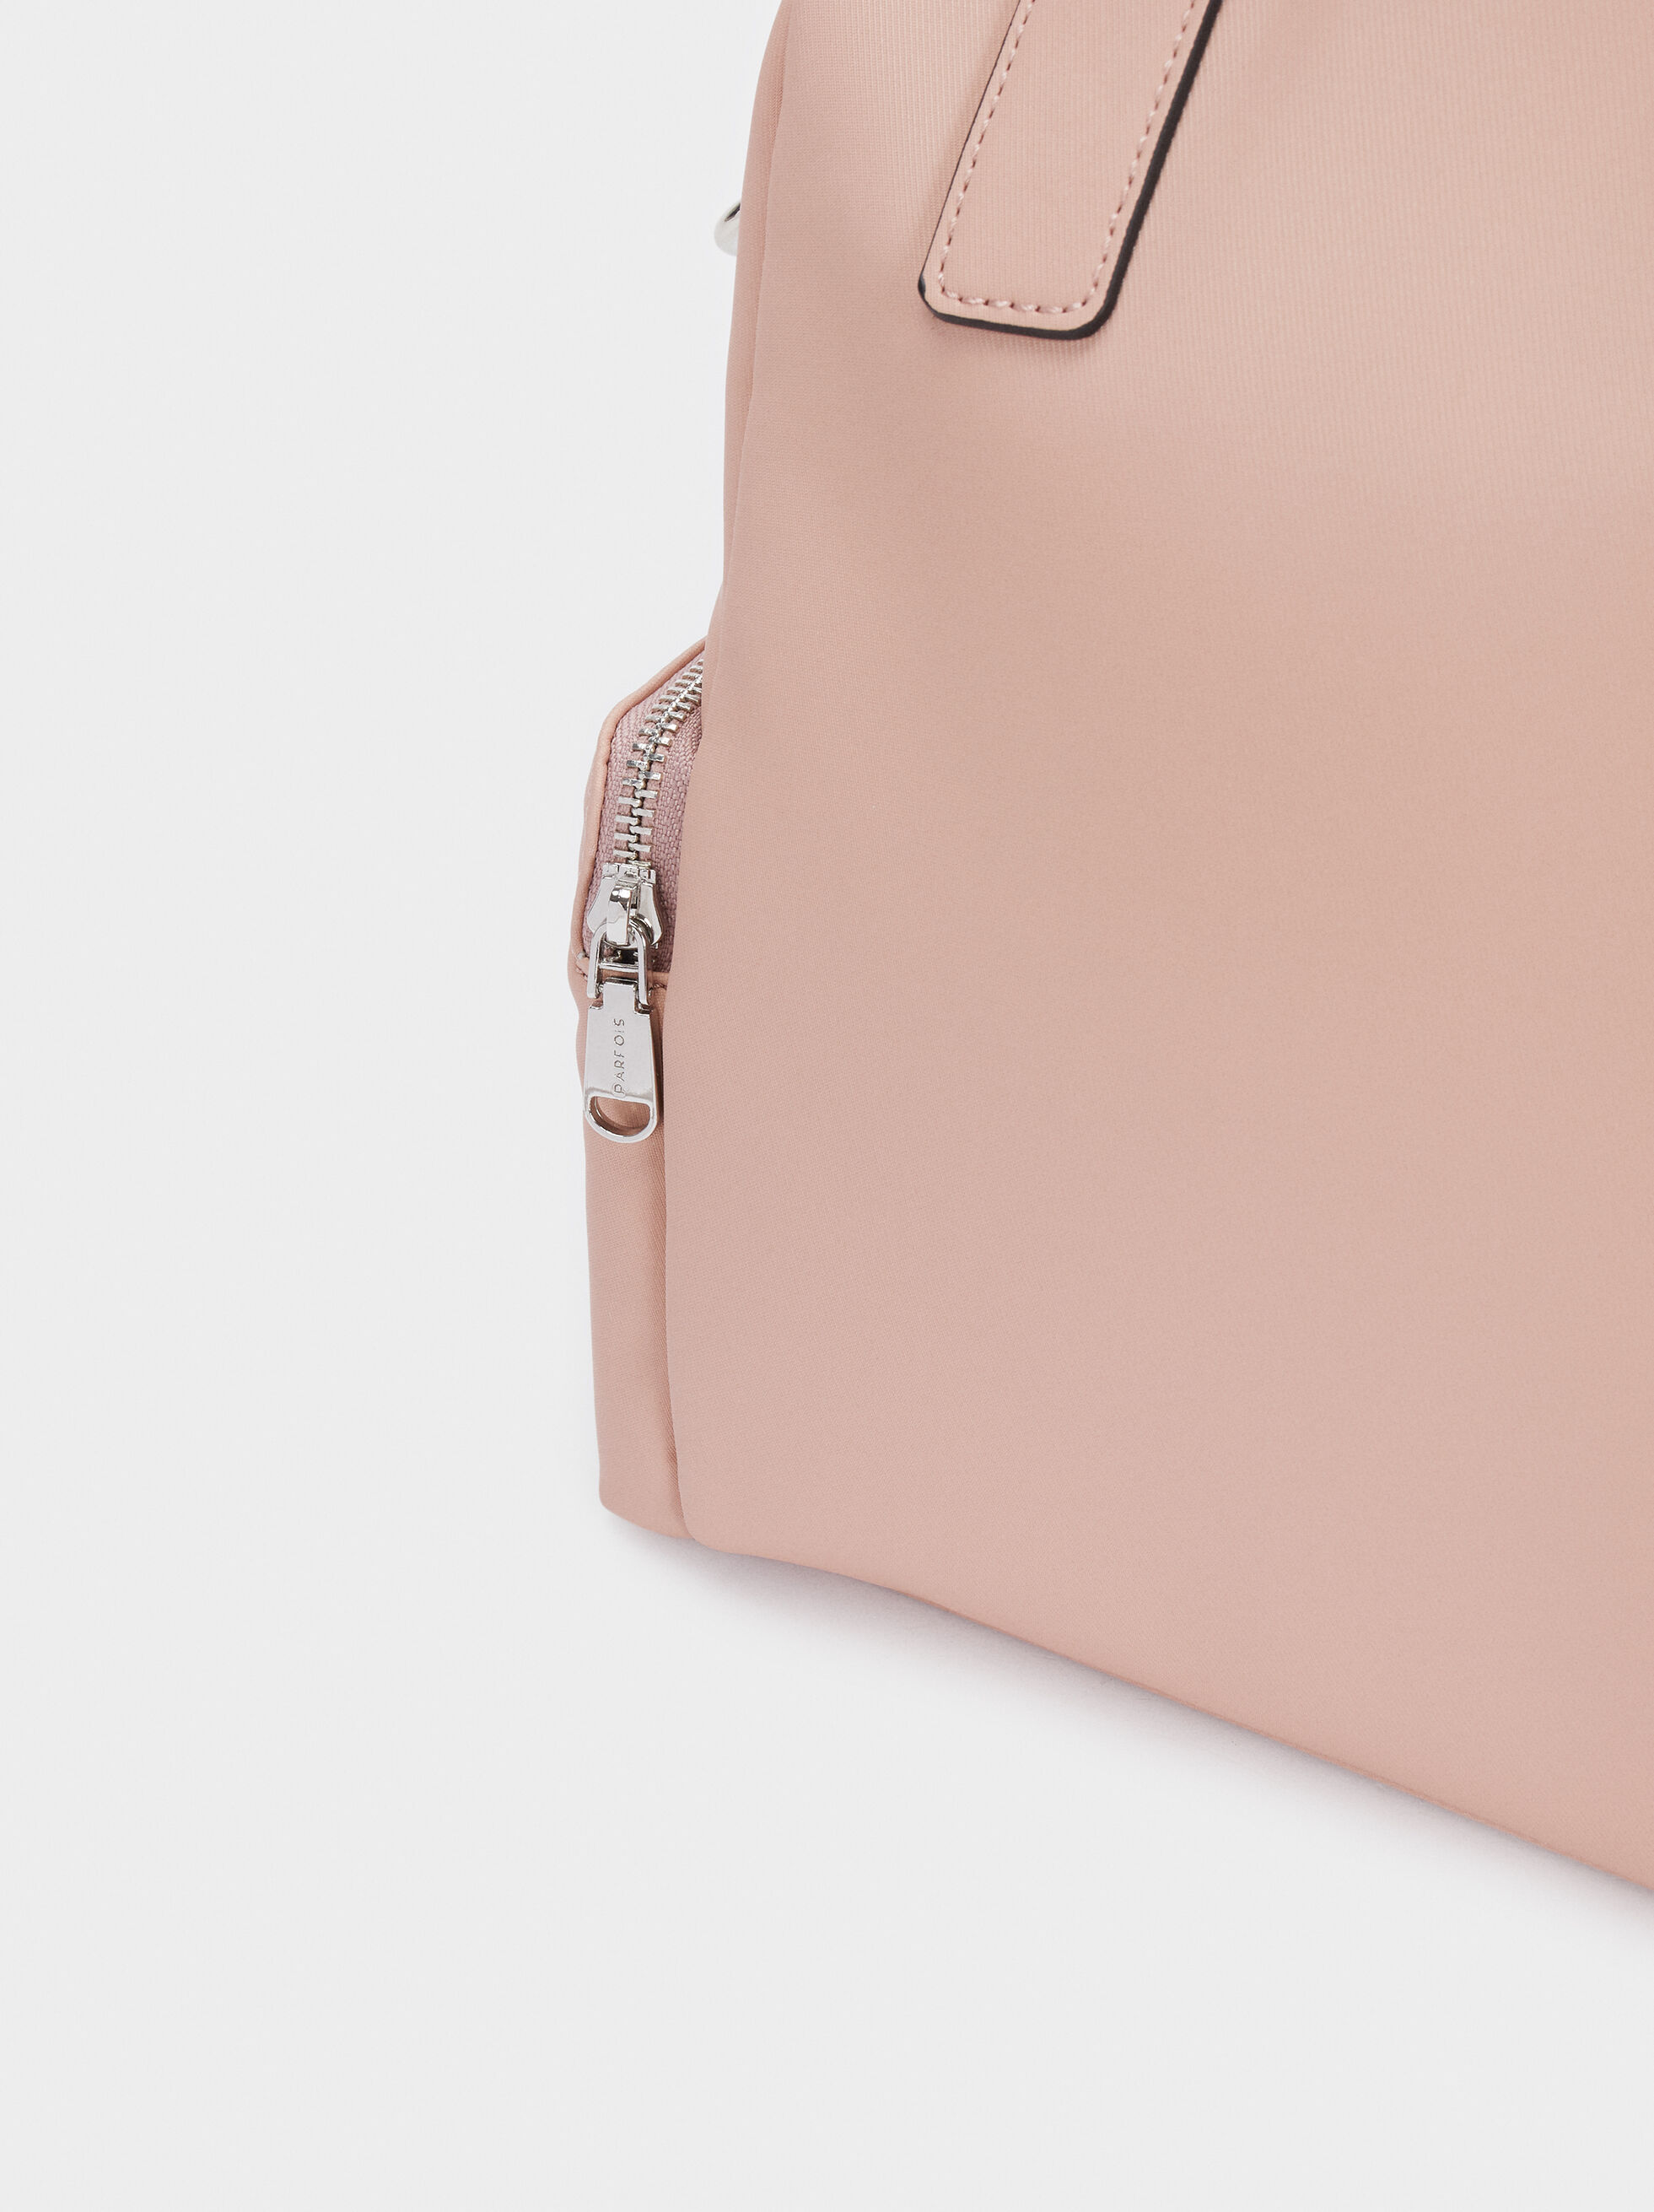 Multi-Way Backpack With Detachable Straps, Pink, hi-res